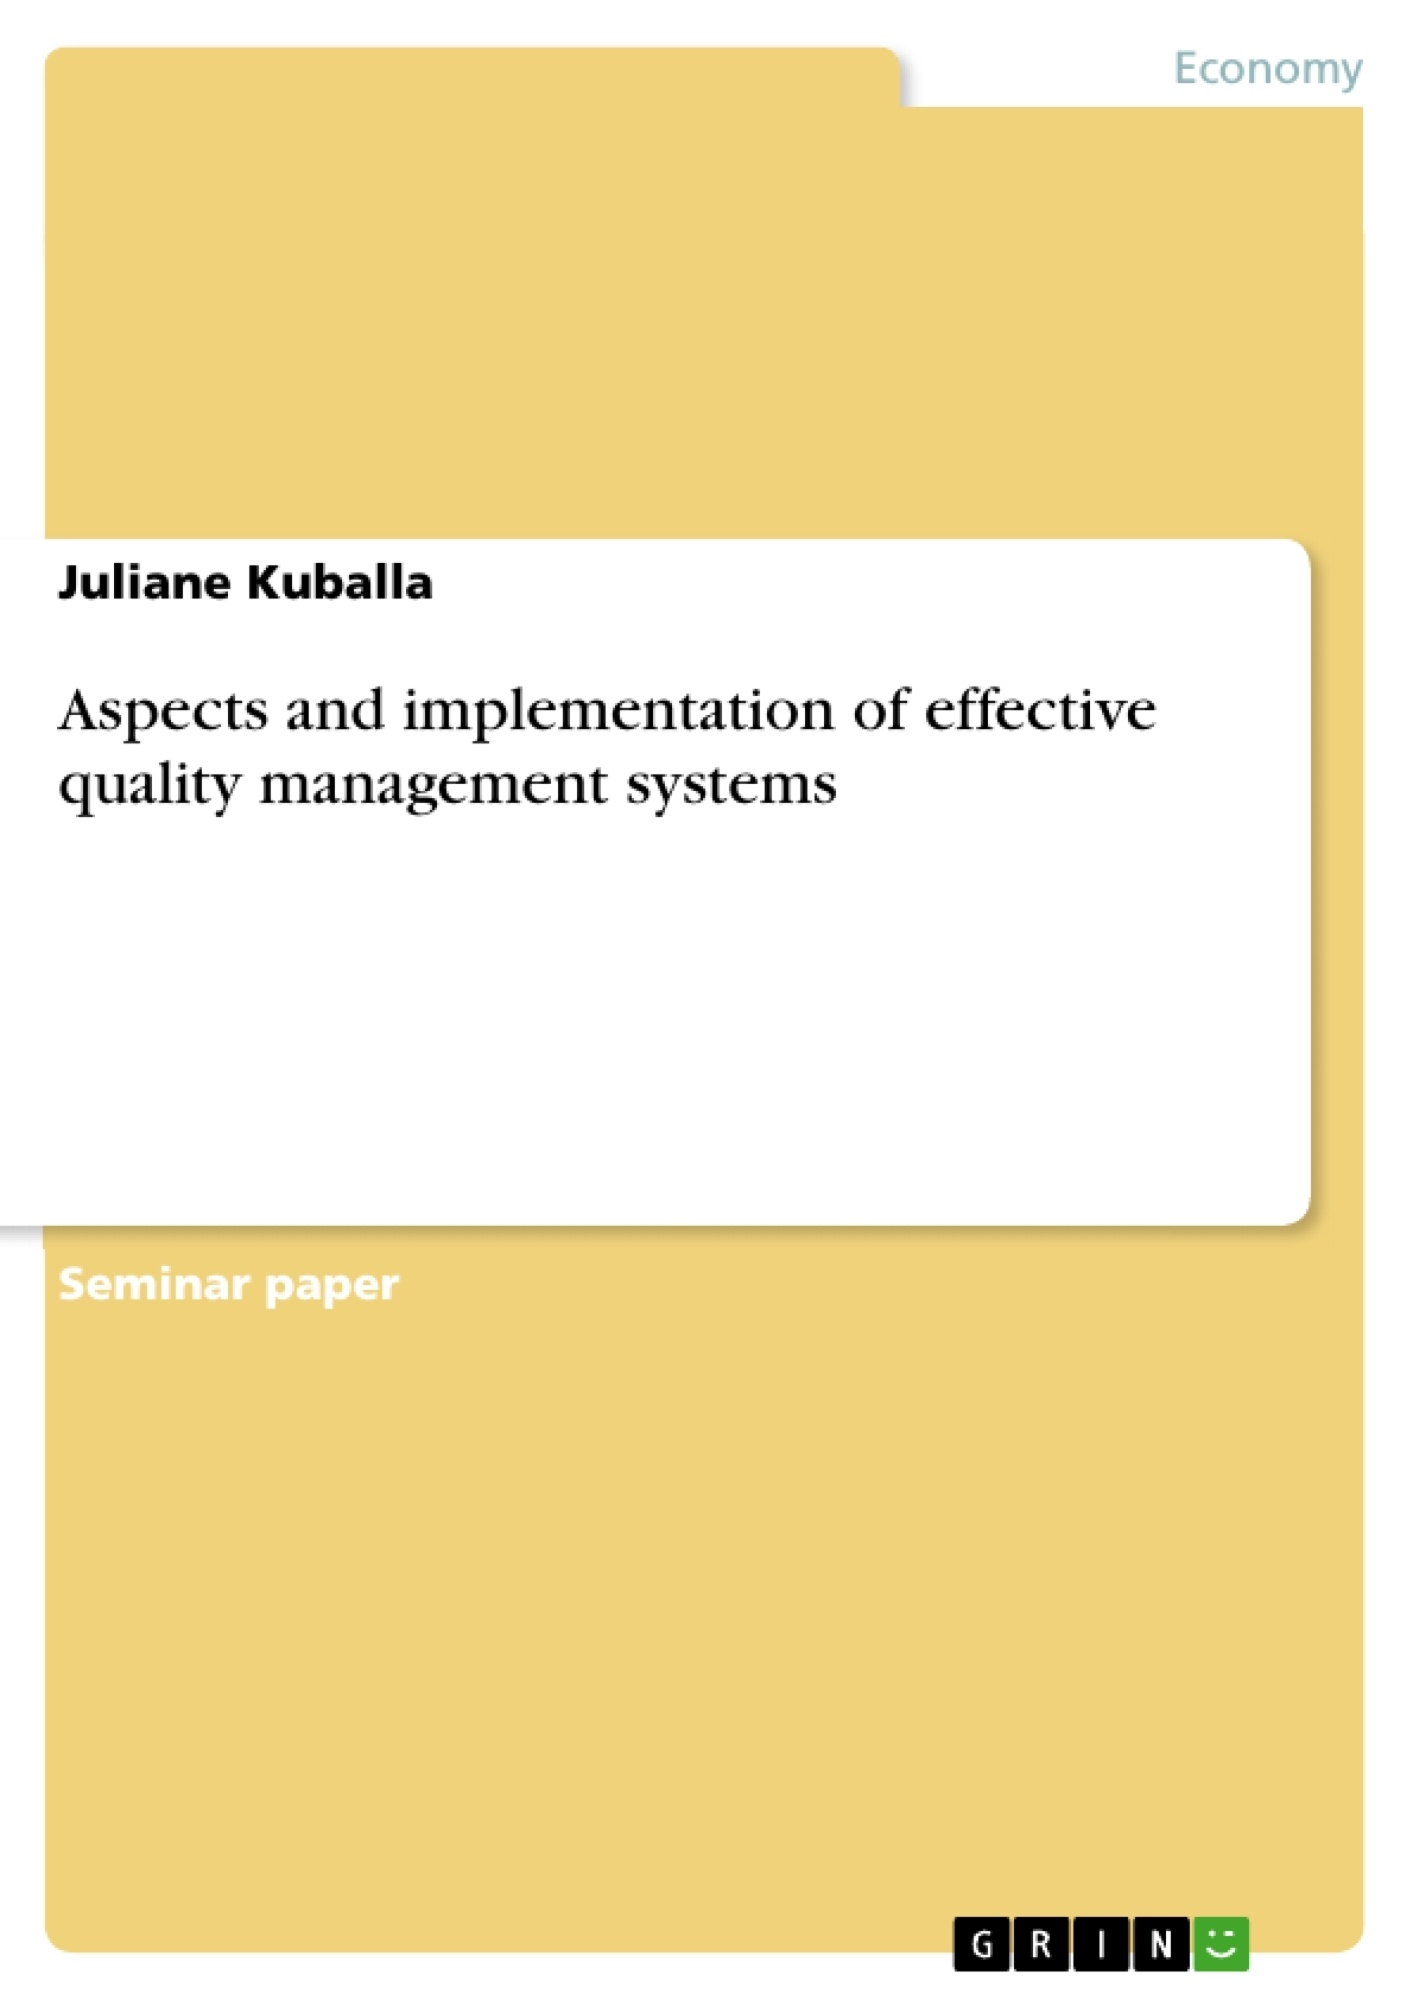 Title: Aspects and implementation of effective quality management systems